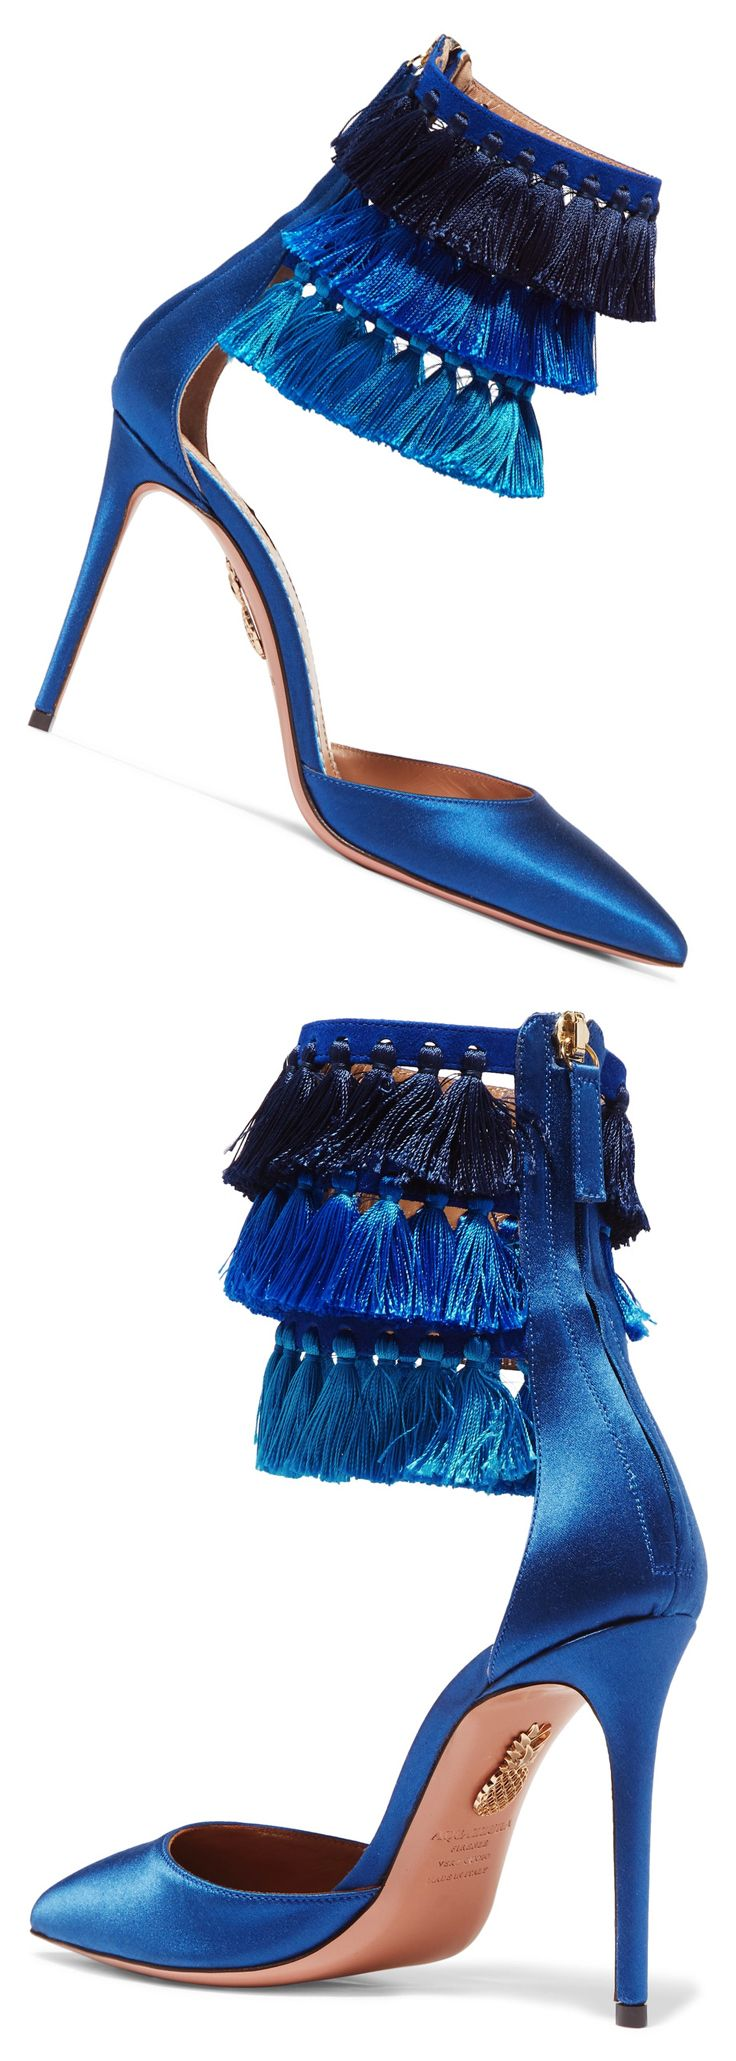 To mark her 30th anniversary in the fashion industry, iconic supermodel Claudia Schiffer has created shoes with Aquazzura that mirrors her own personal style. Named after London's nightclub Loulou's, these pumps are made from smooth royal-blue satin and decorated with tiers of tassels at the ankle show them off with midi length skirts. #eveningshoes #christmaspresents #giftsforher #tassels #tasselshoes #underthetree #shoeaddict #valentinesgifts #affiliatelink #shoes #fashion #fashionblogger